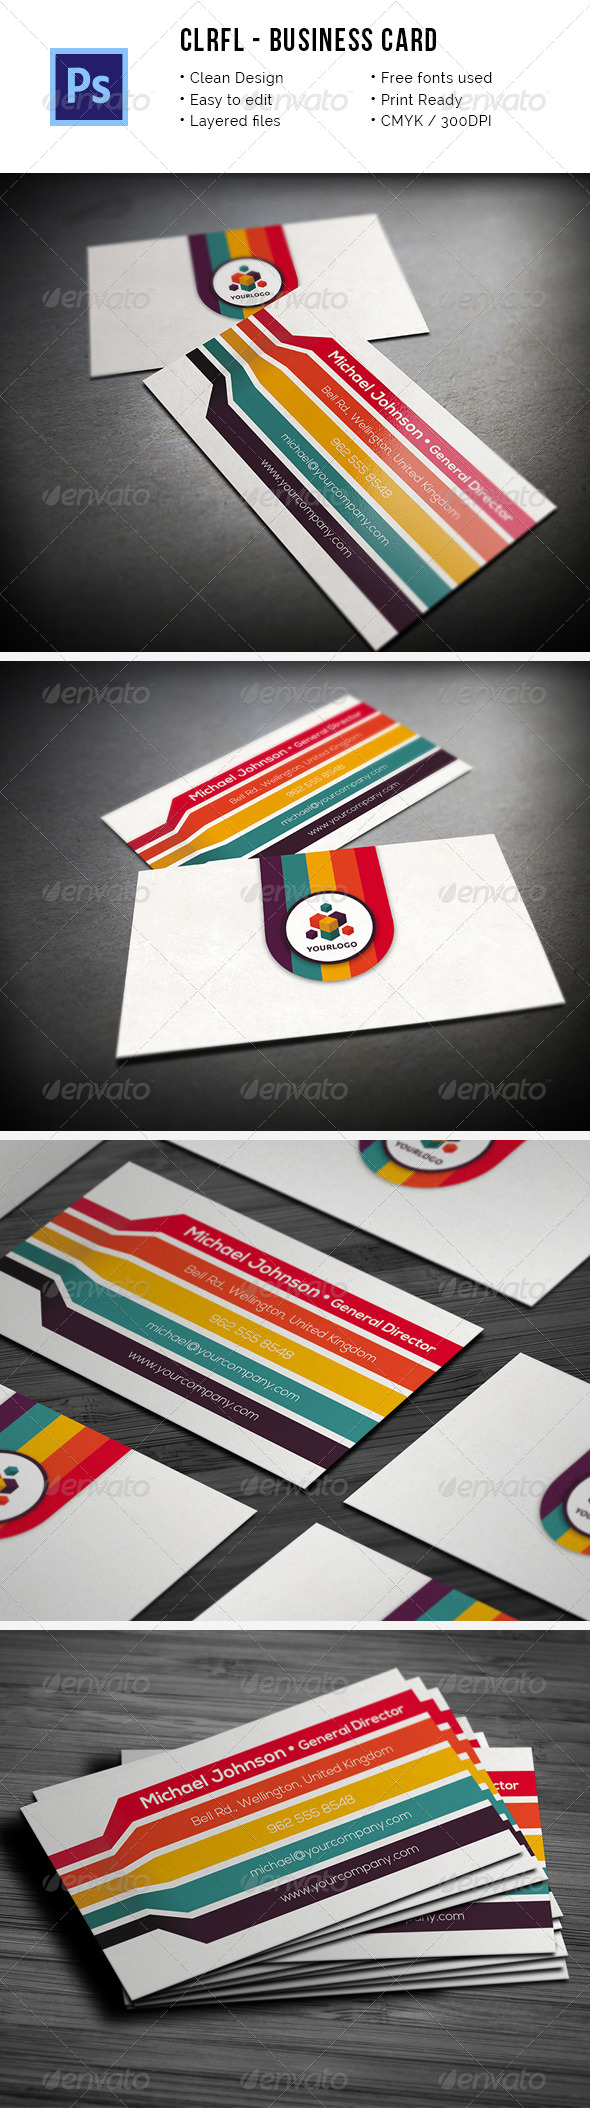 Clrfl - Colorful Business Card - Industry Specific Business Cards